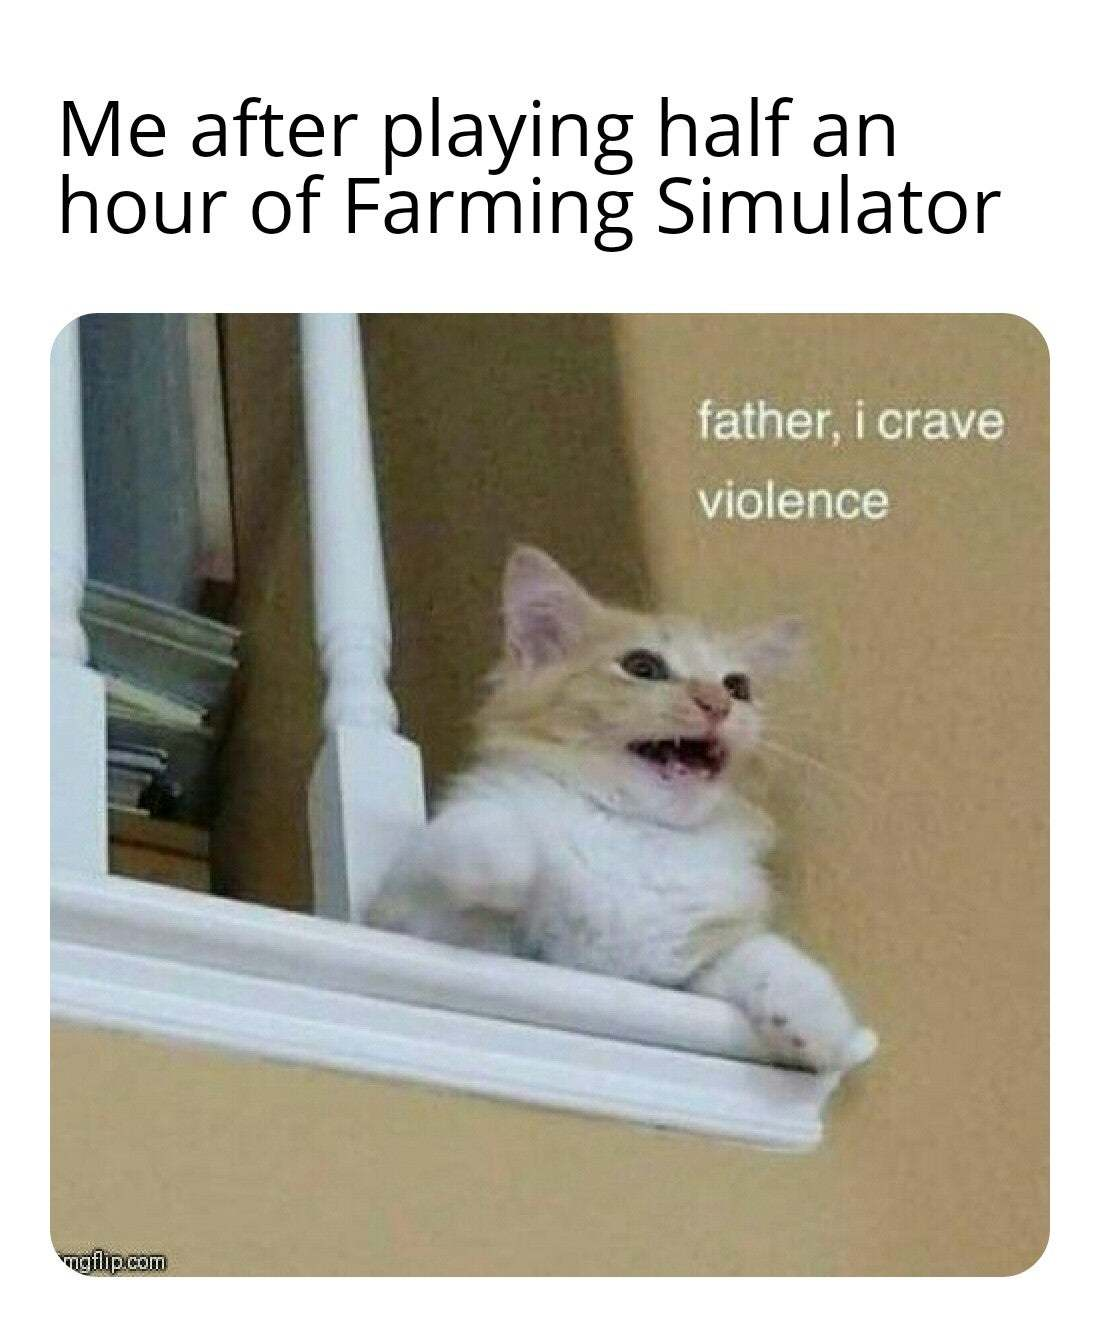 Video game violence is affecting everyone - meme